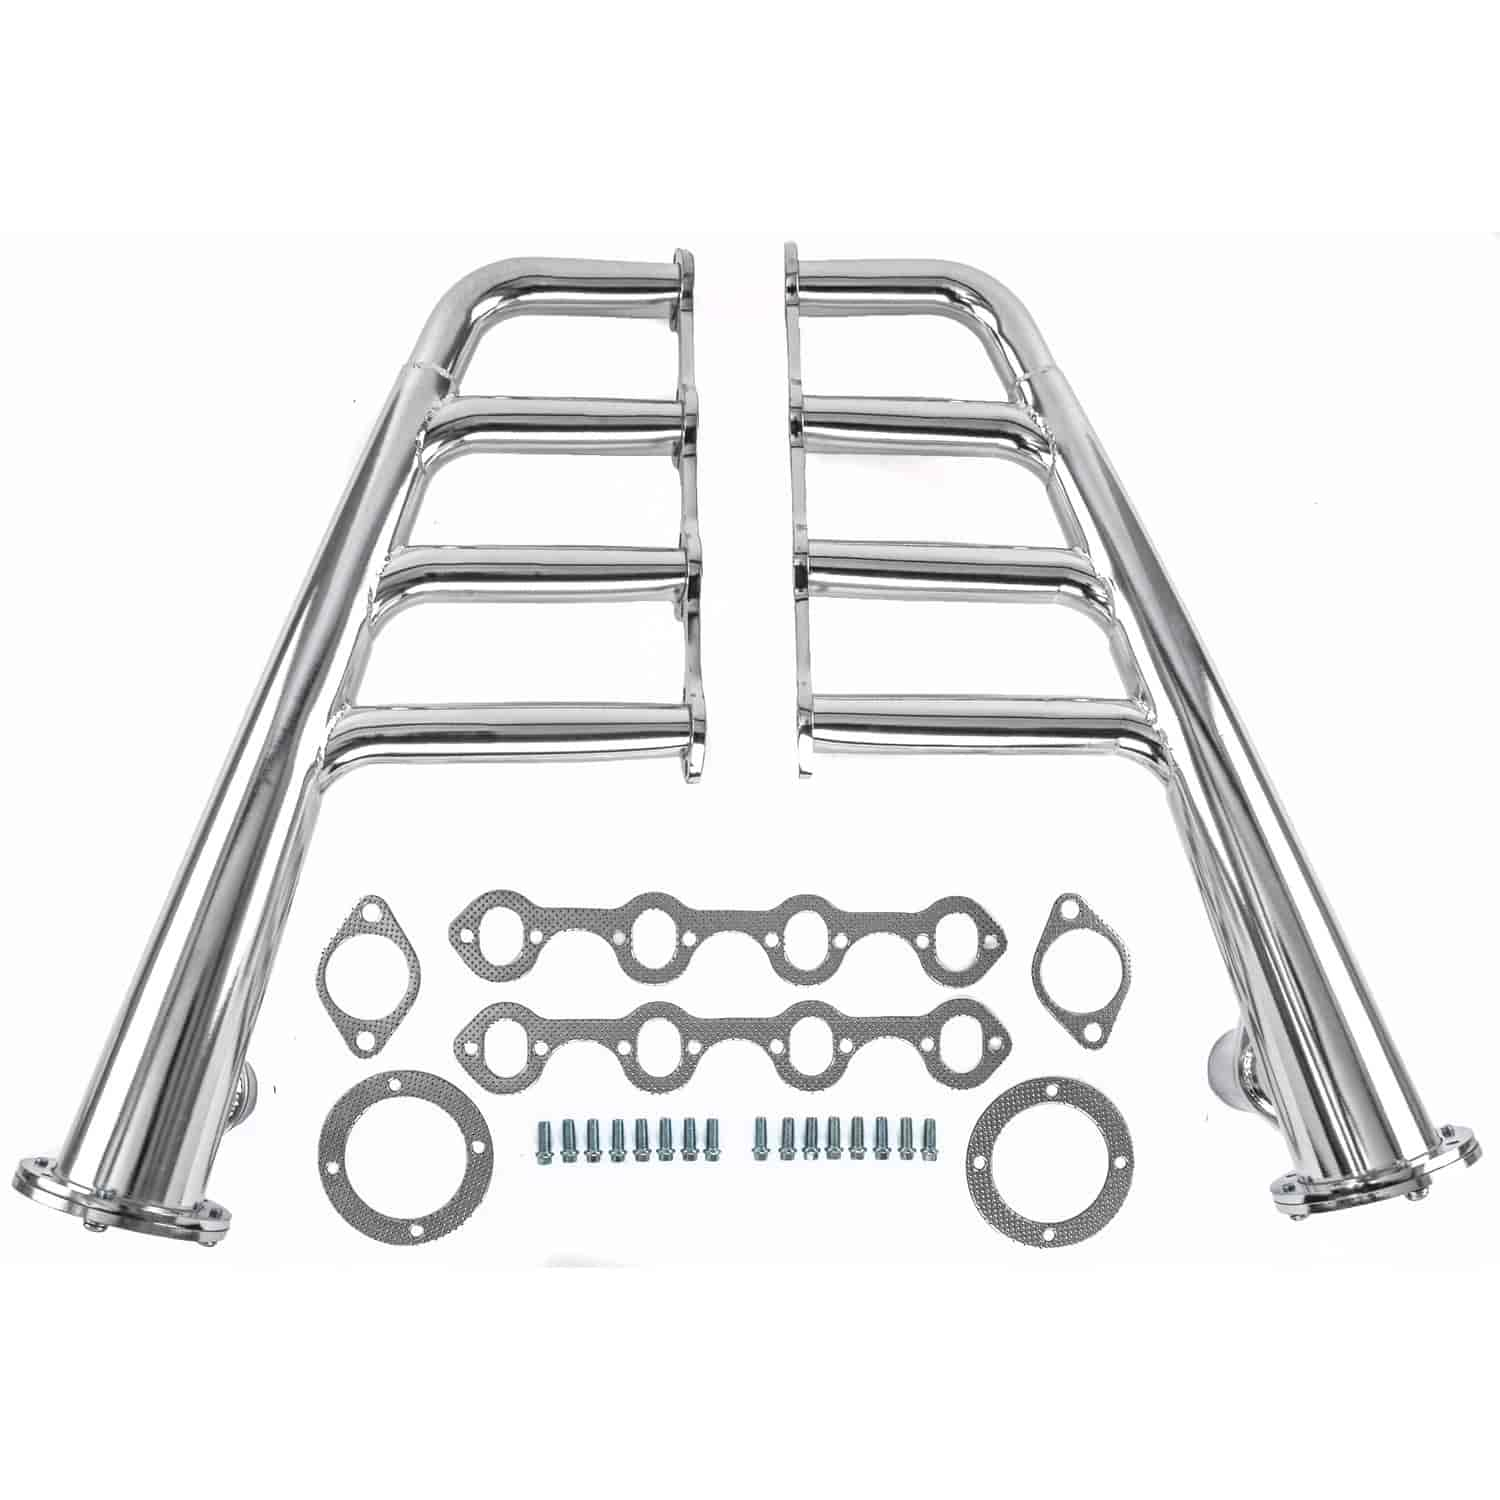 Jegs Lakester Headers Small Block Ford